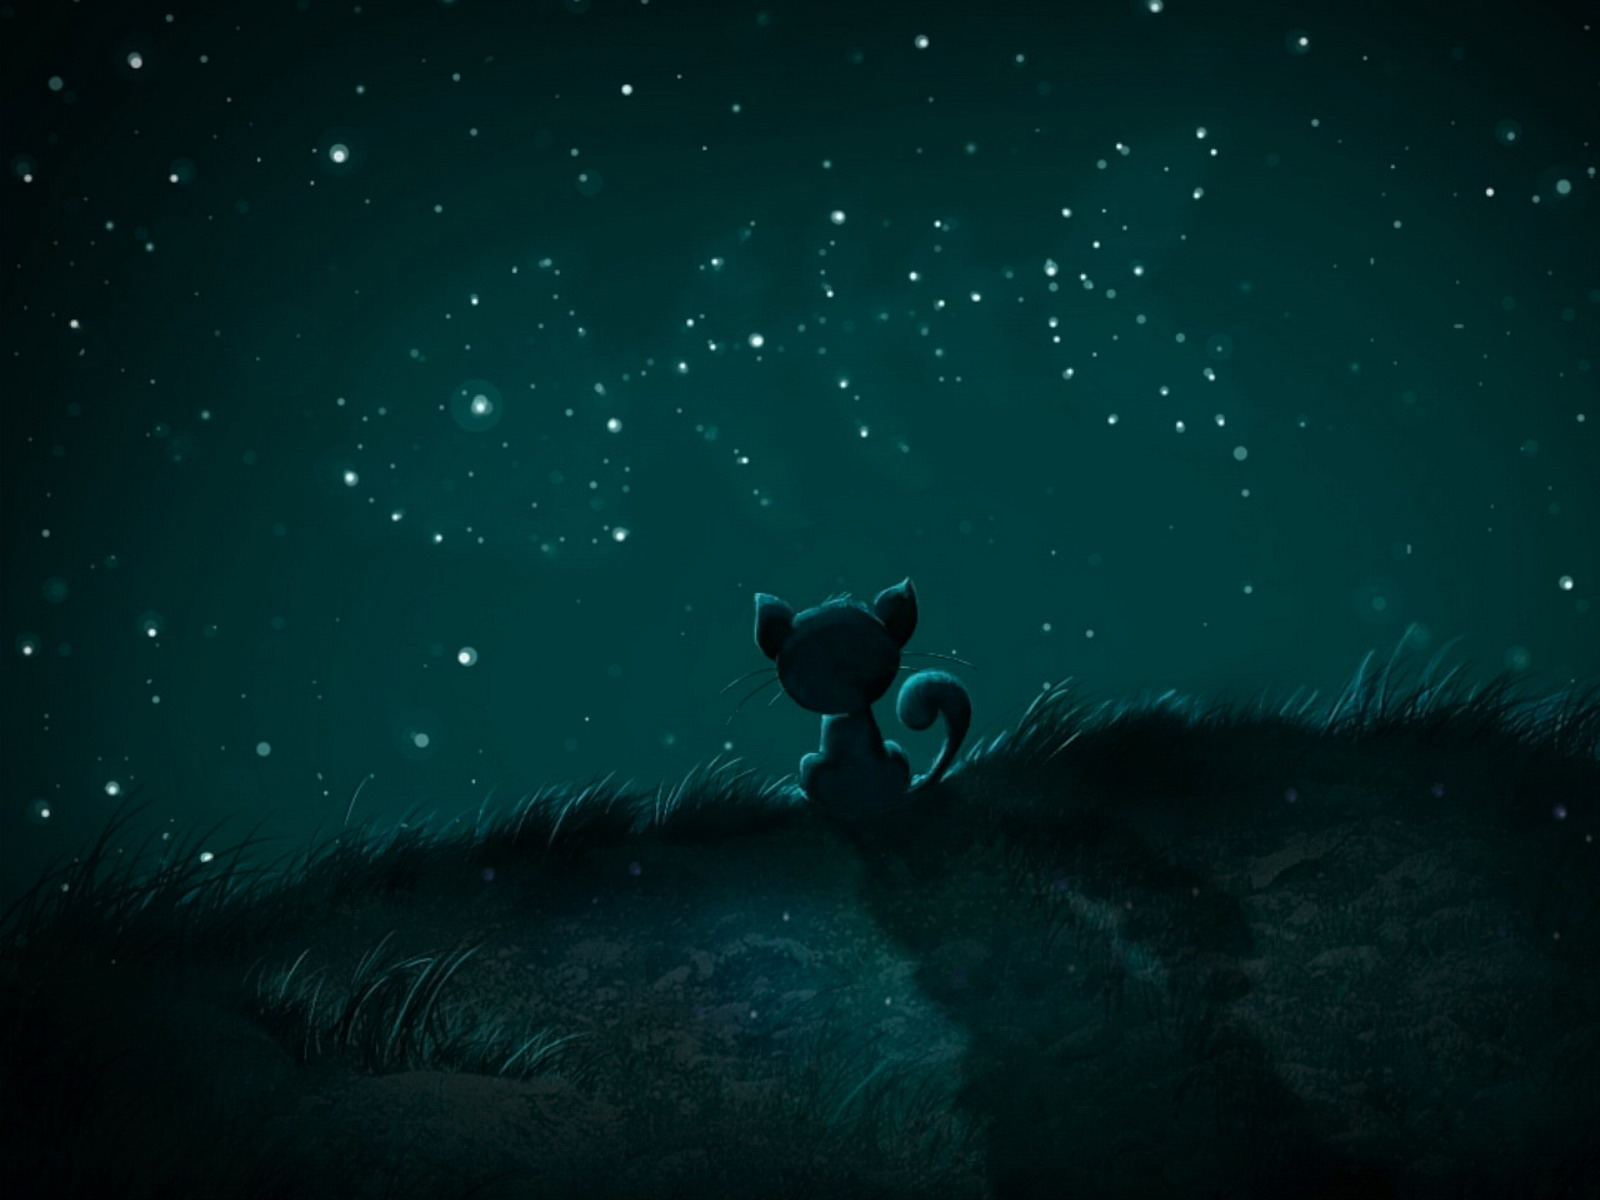 stars wallpaper on Cat Stars Night Wallpaper  Desktop  Hd  Free Download